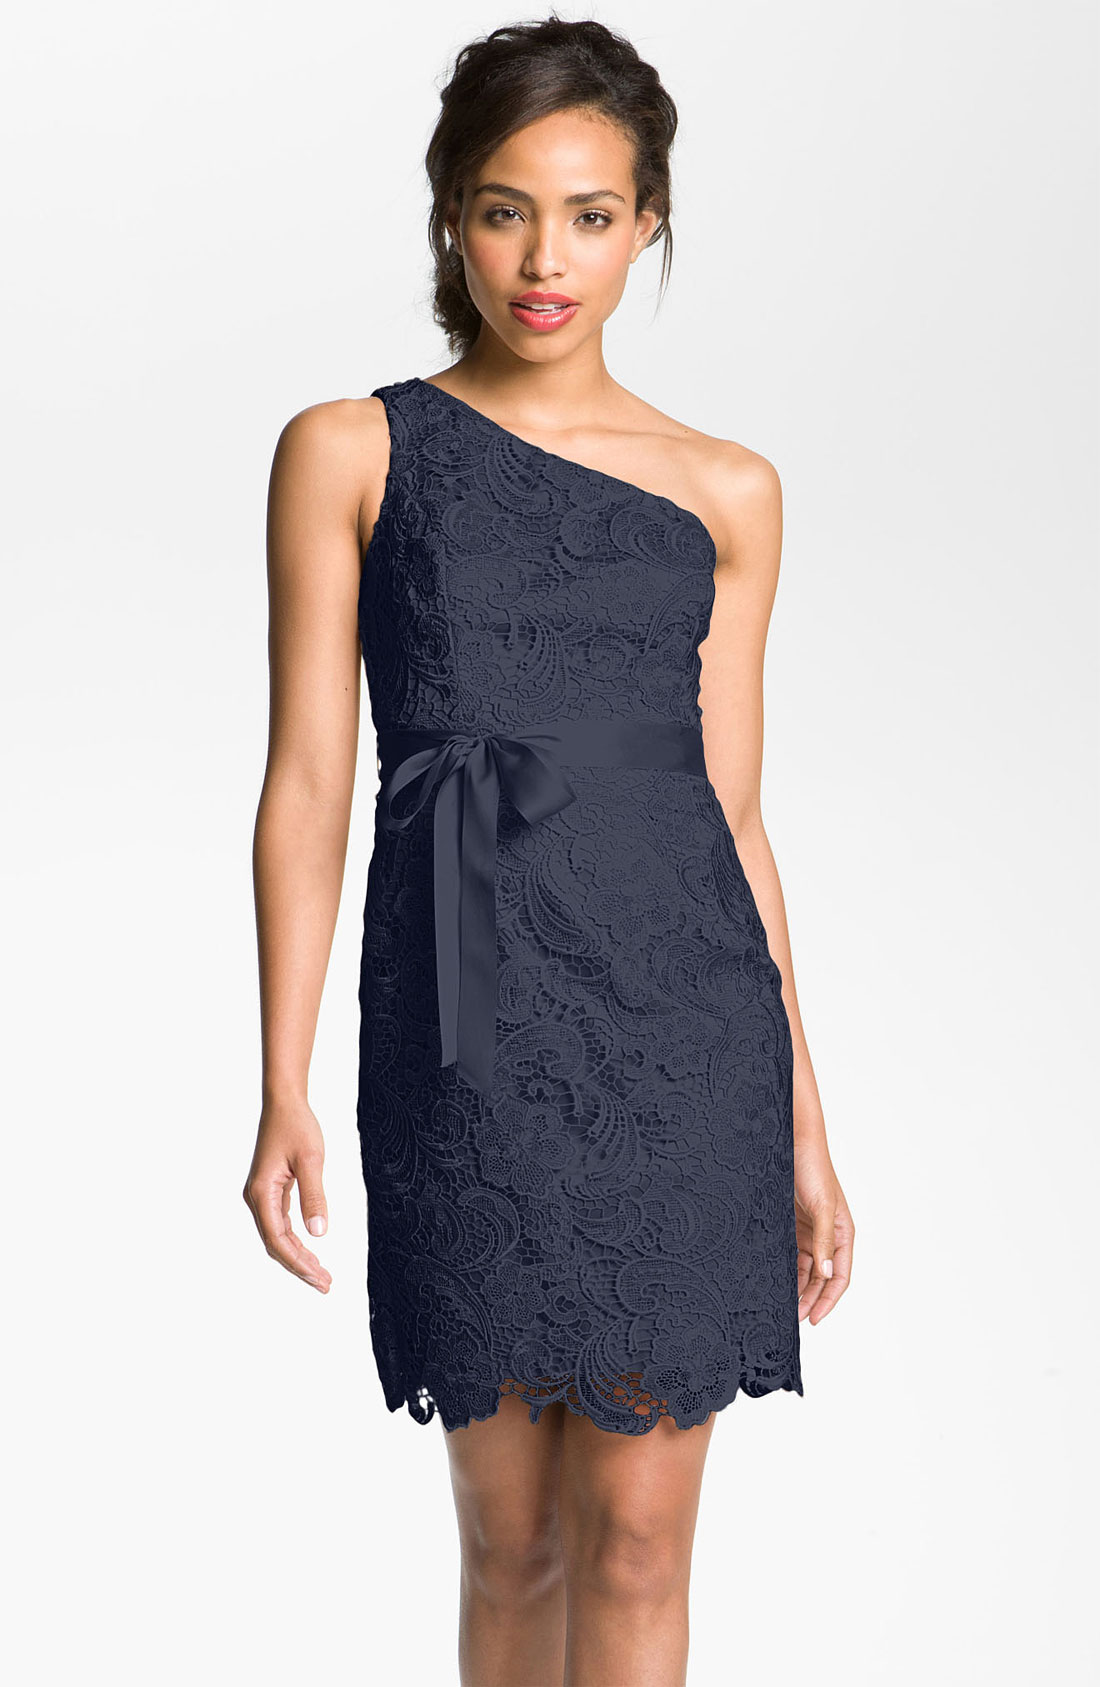 Adrianna Papell Lace e Shoulder Sheath Dress in Blue